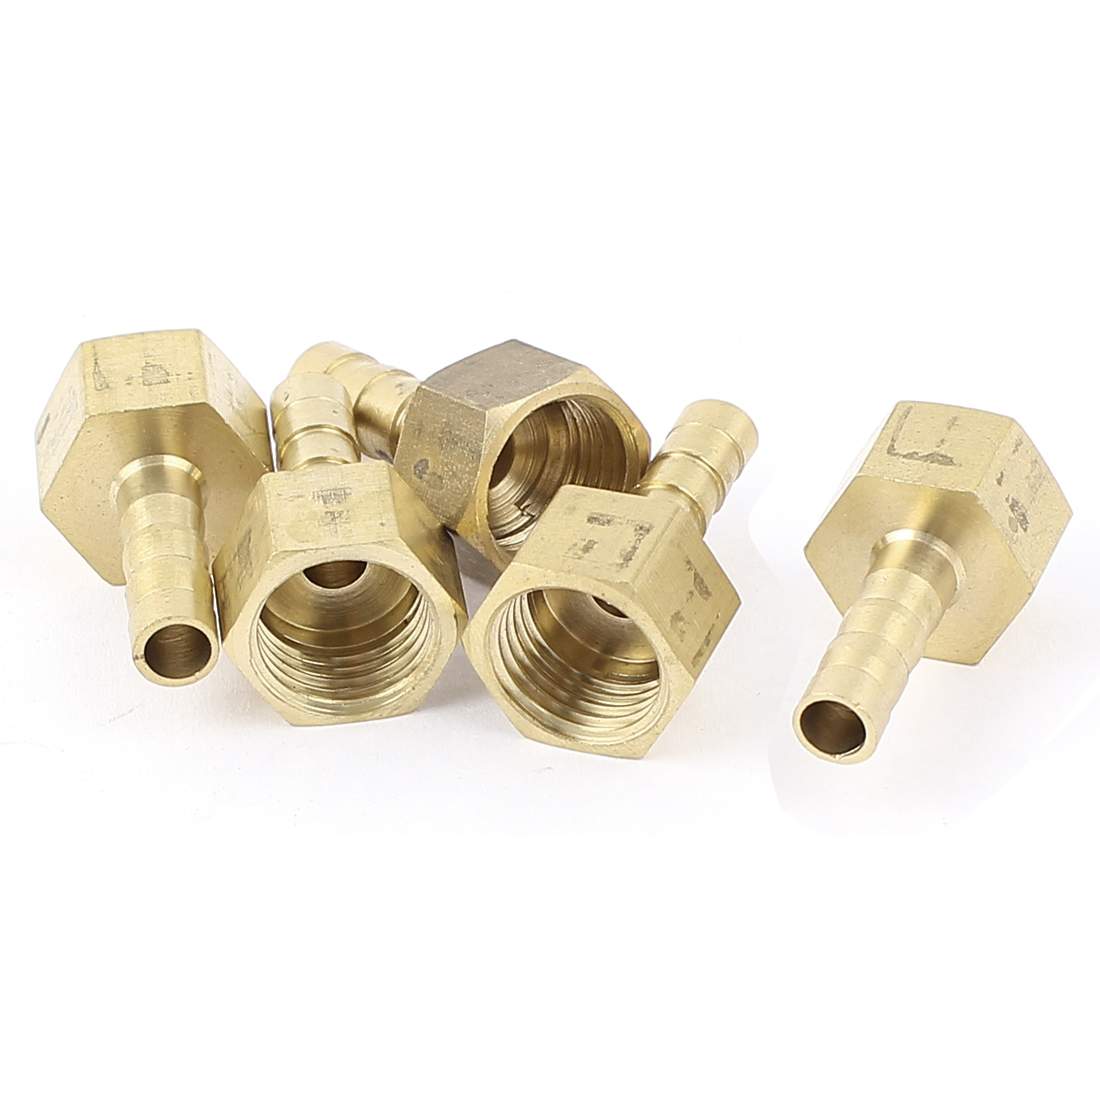 Brass 6mm Hose Barb 1/4BSP Female Thread Quick Joint Connector Adapter 5Pcs